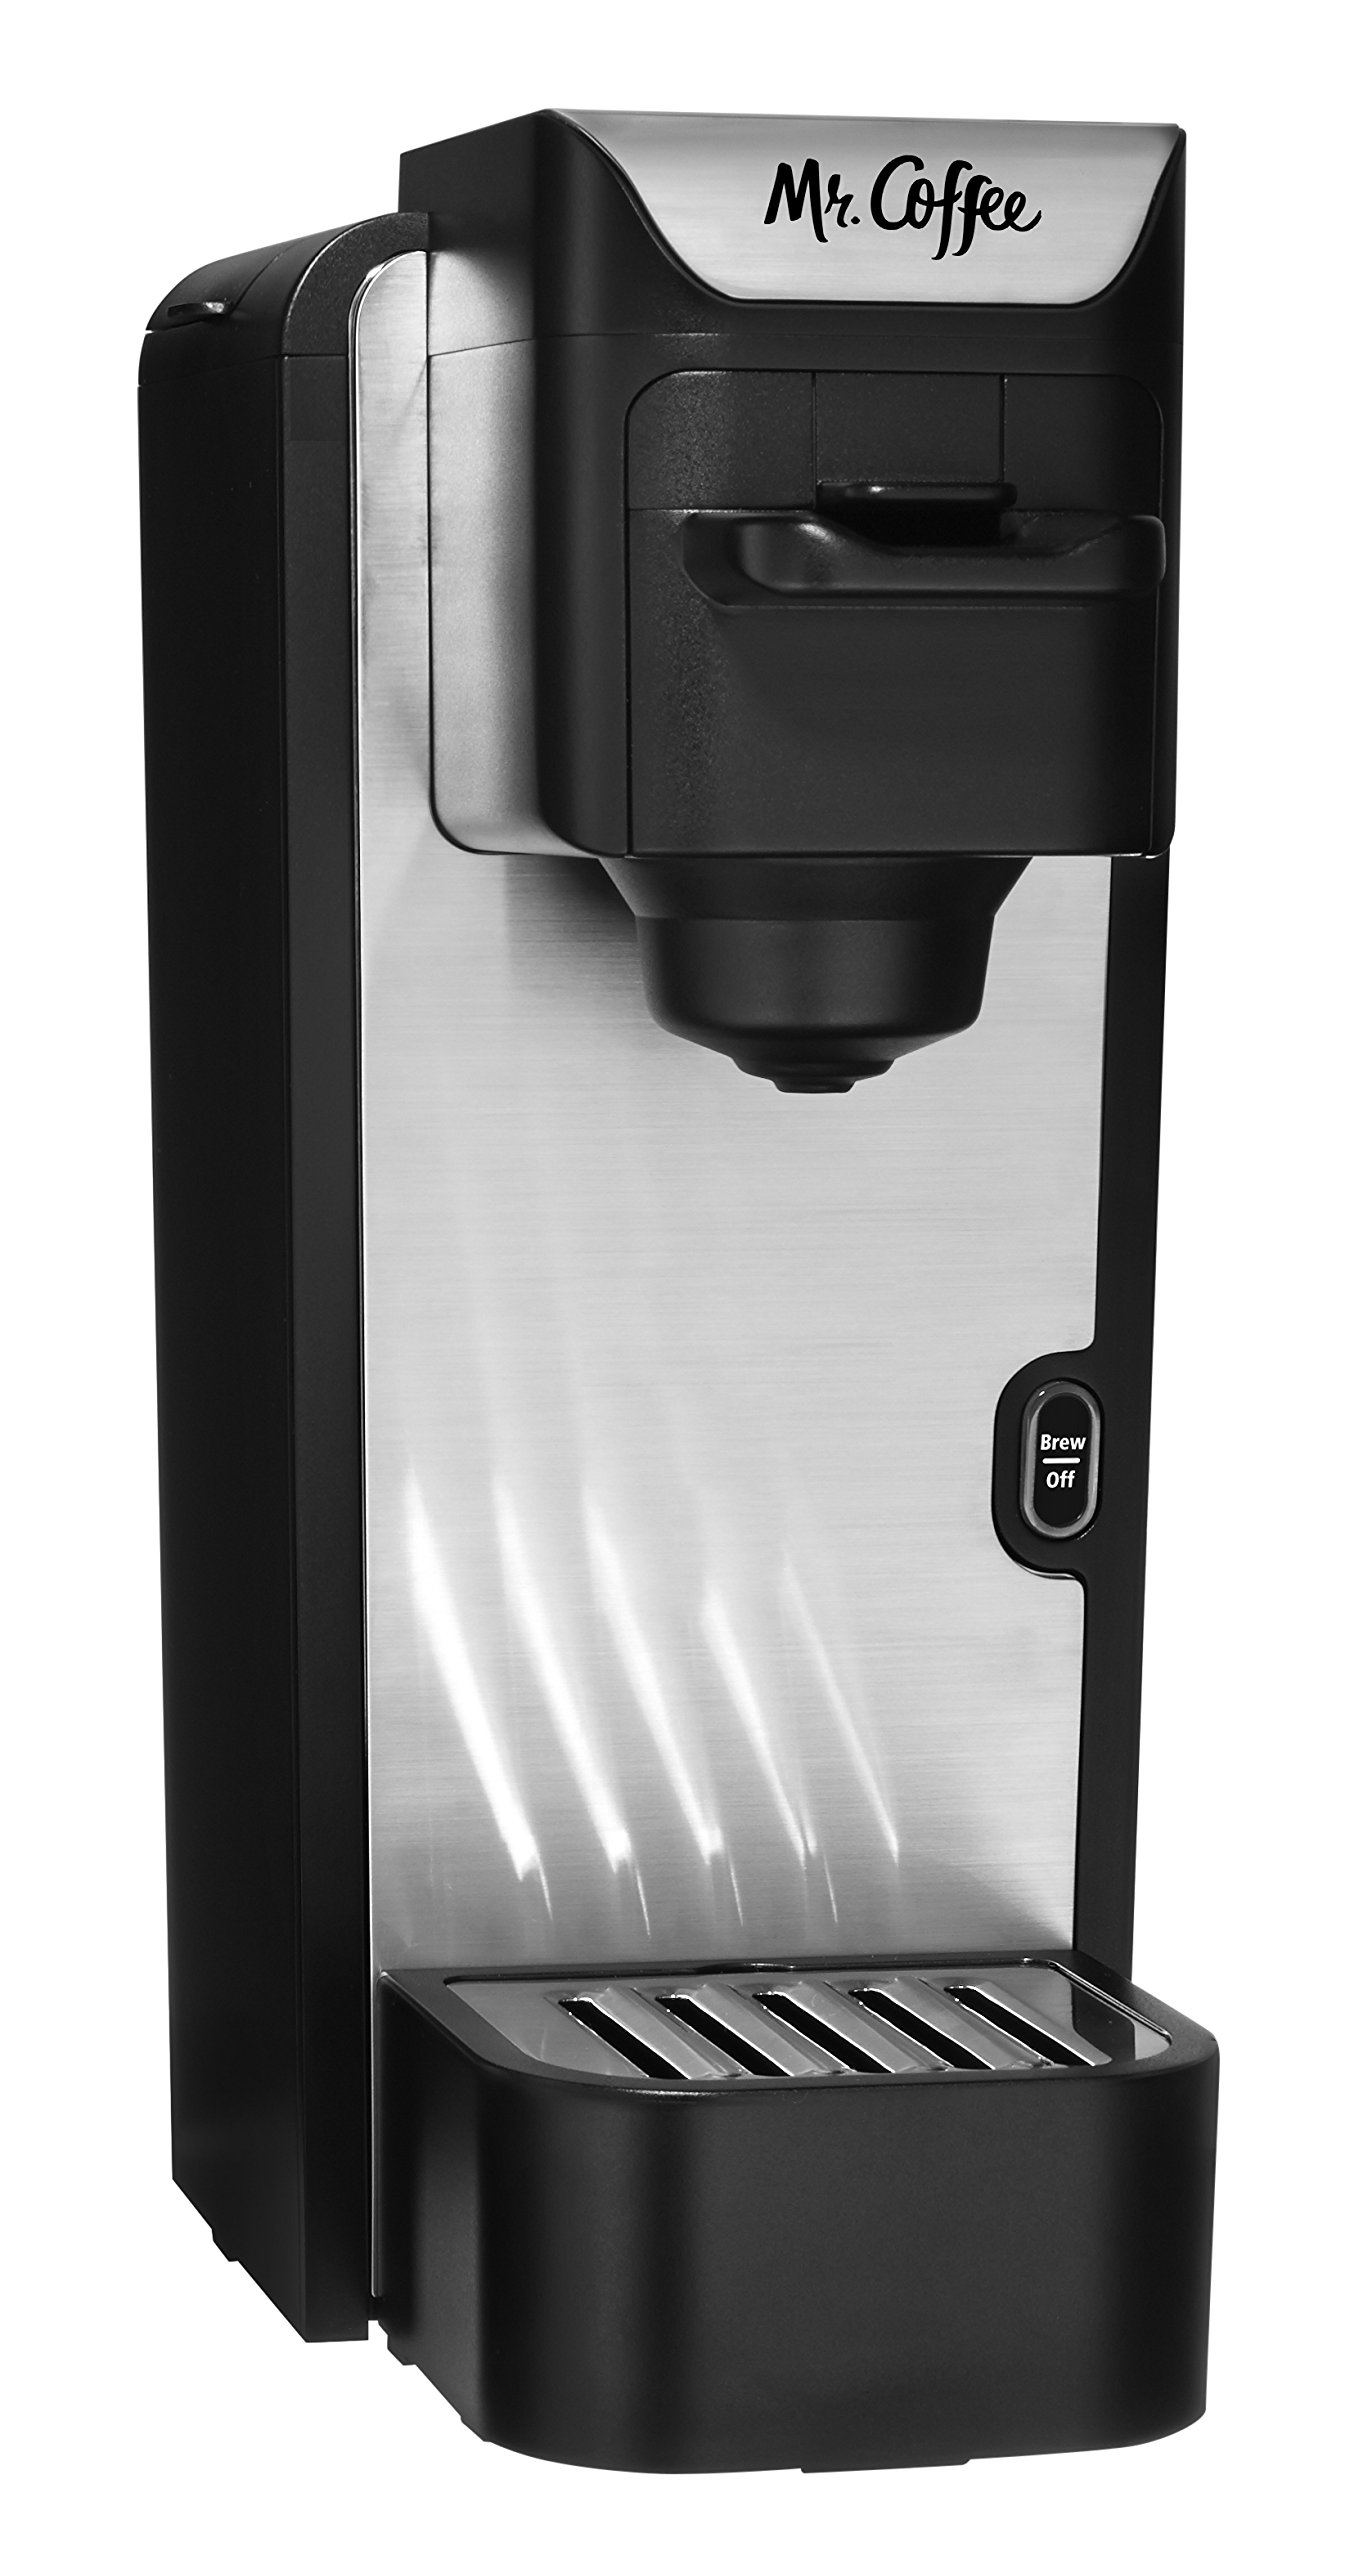 Mr. Coffee BVMC-SC100-2 Single-Serve Coffee Maker, Black With Silver Panel by Mr. Coffee